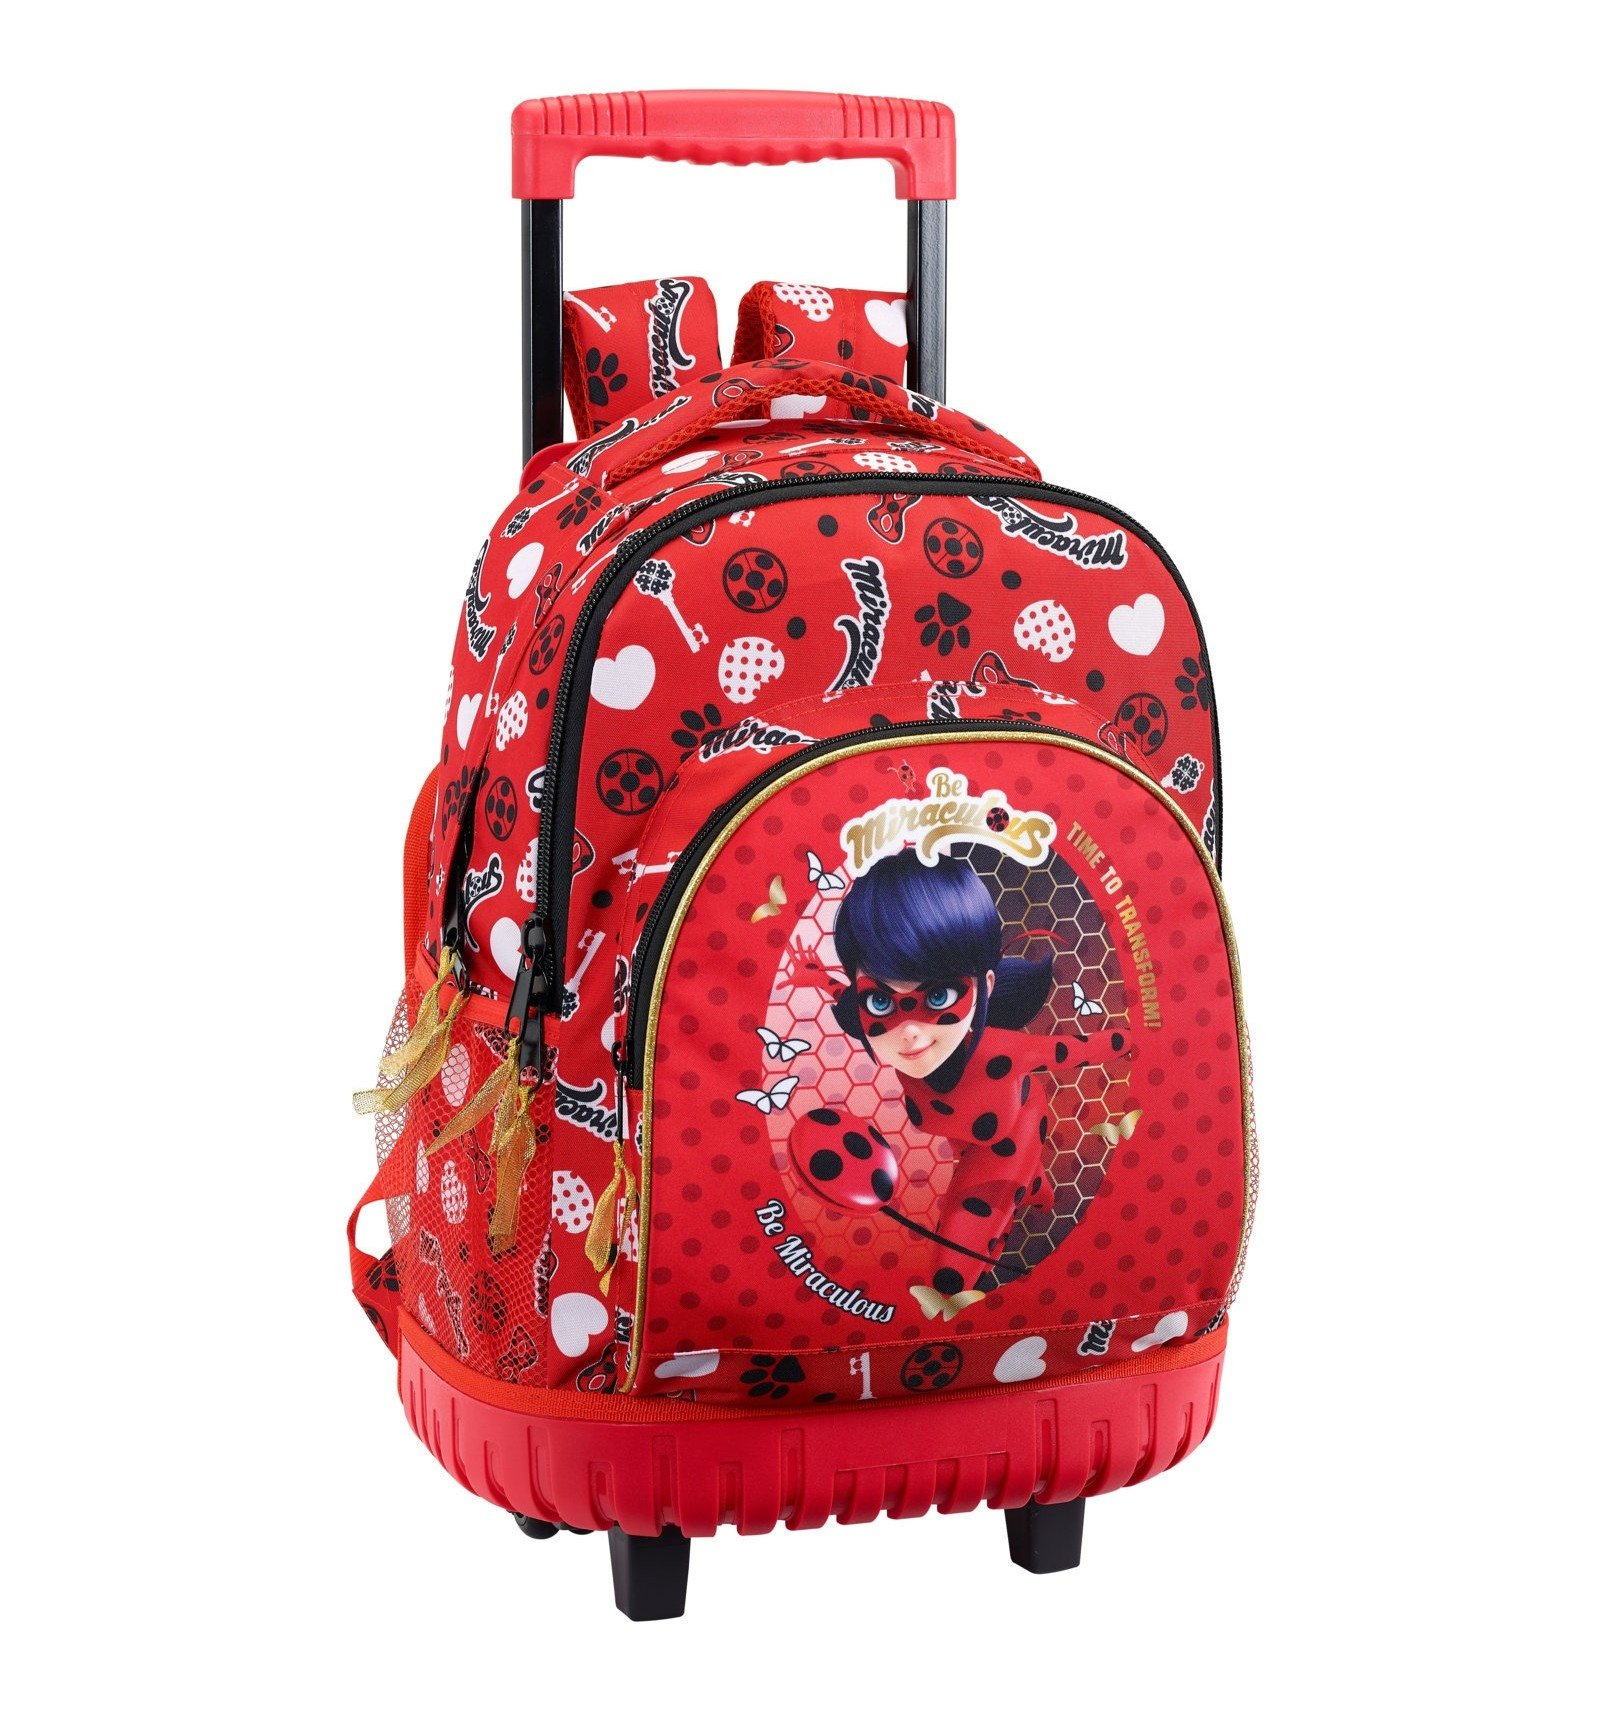 a32511bfd3 Miraculous Ladybug Zaino Trolley Scuola Elementare